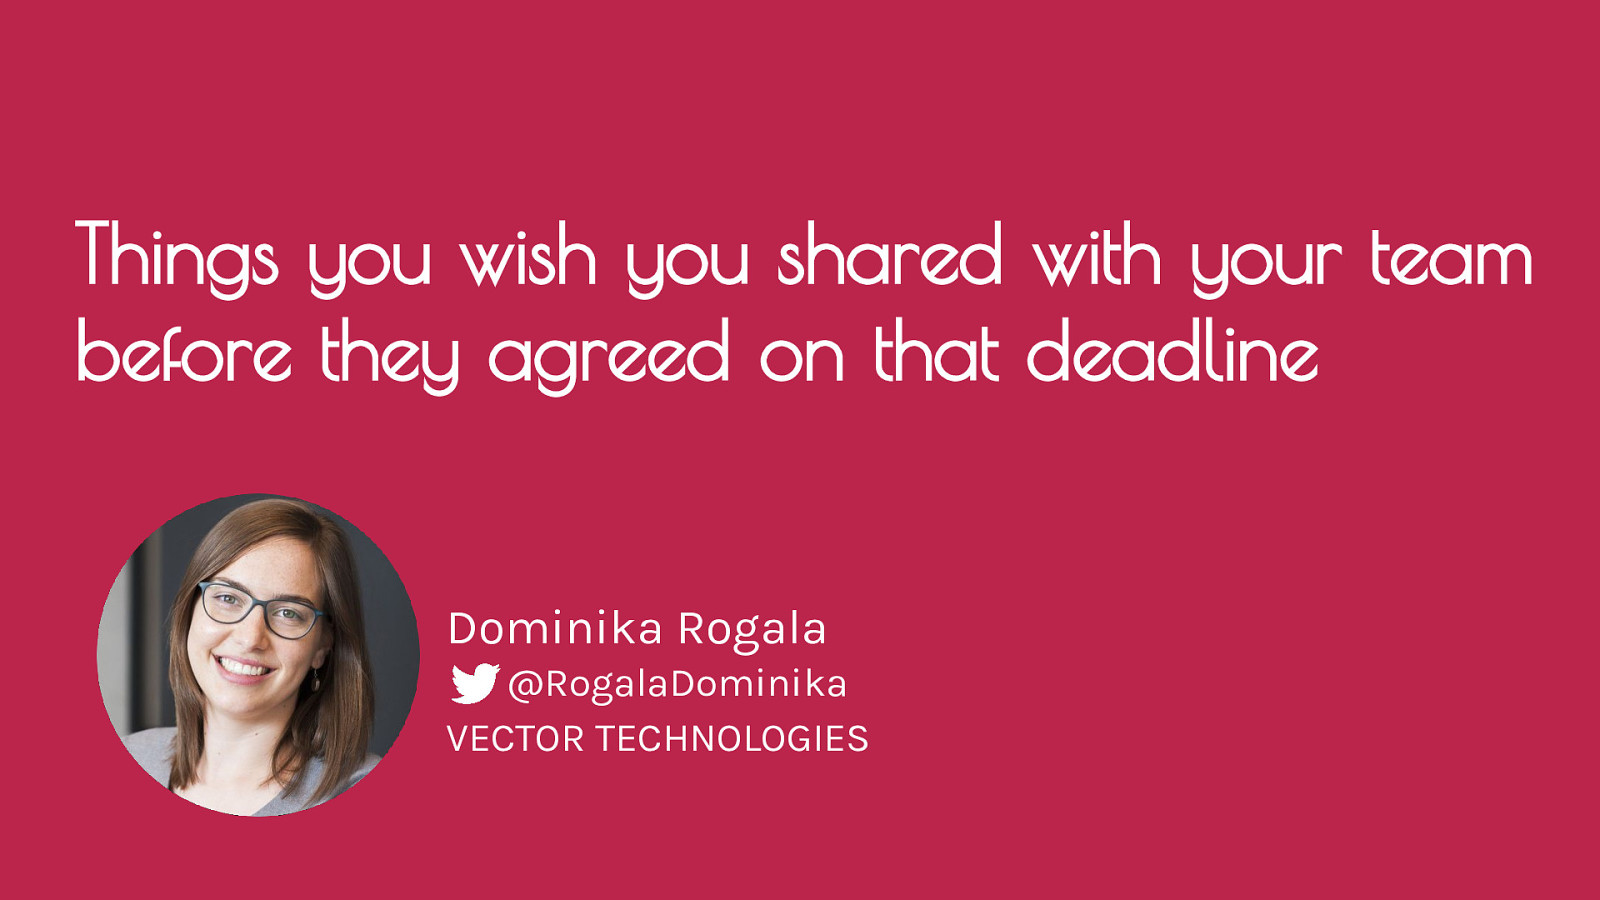 Things you wish you shared with your team before they agreed on that deadline